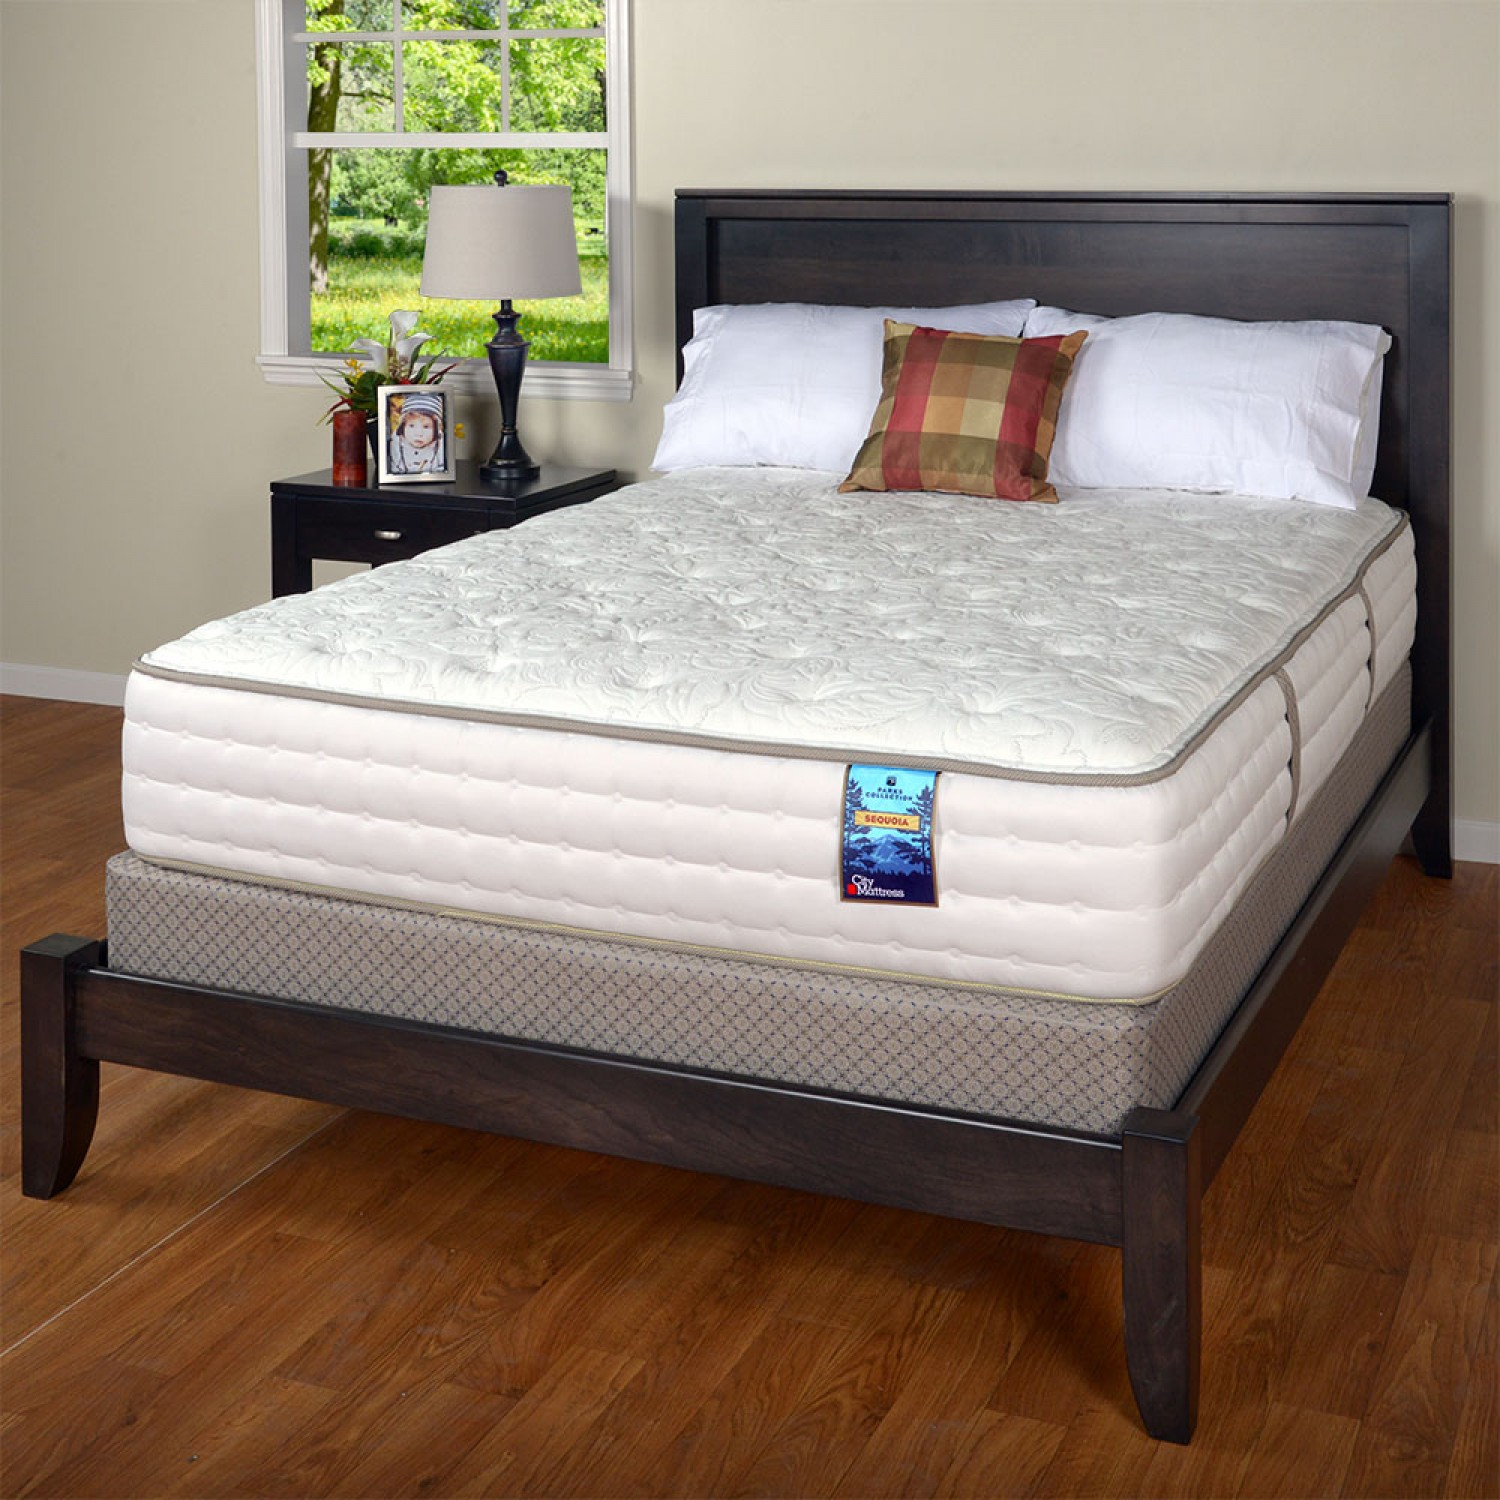 queen edge coil satin mattress encased mobile blend quality specifications sale now discounted guage tack pocketed mattresses for foam spring support jump and on in high brand cover sides city wire unit new